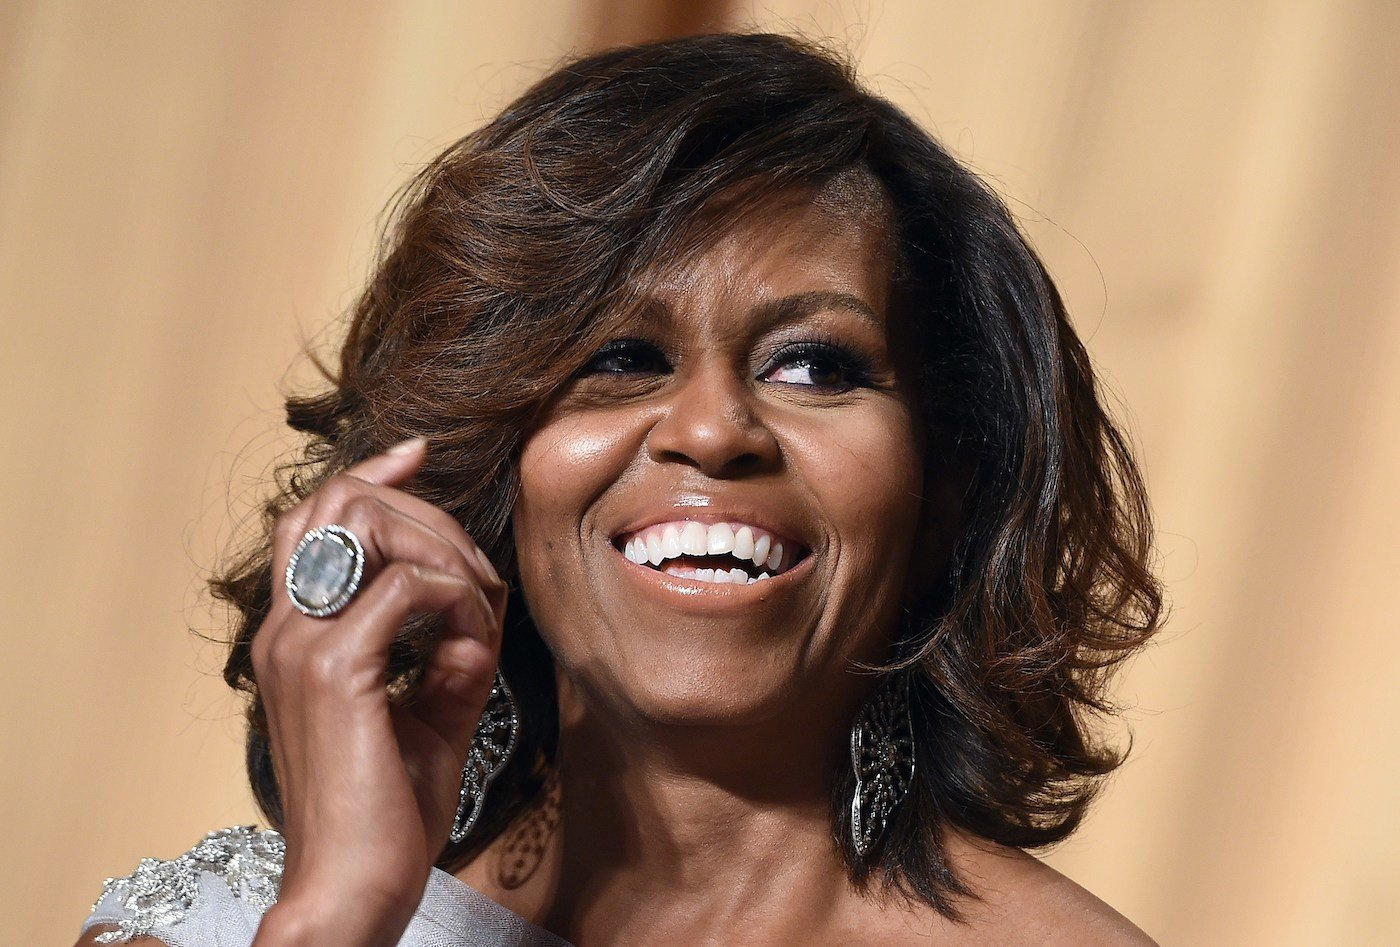 Thumbnail for Michelle Obama's Makeup Artist Answers All of Our Burning Beauty Questions